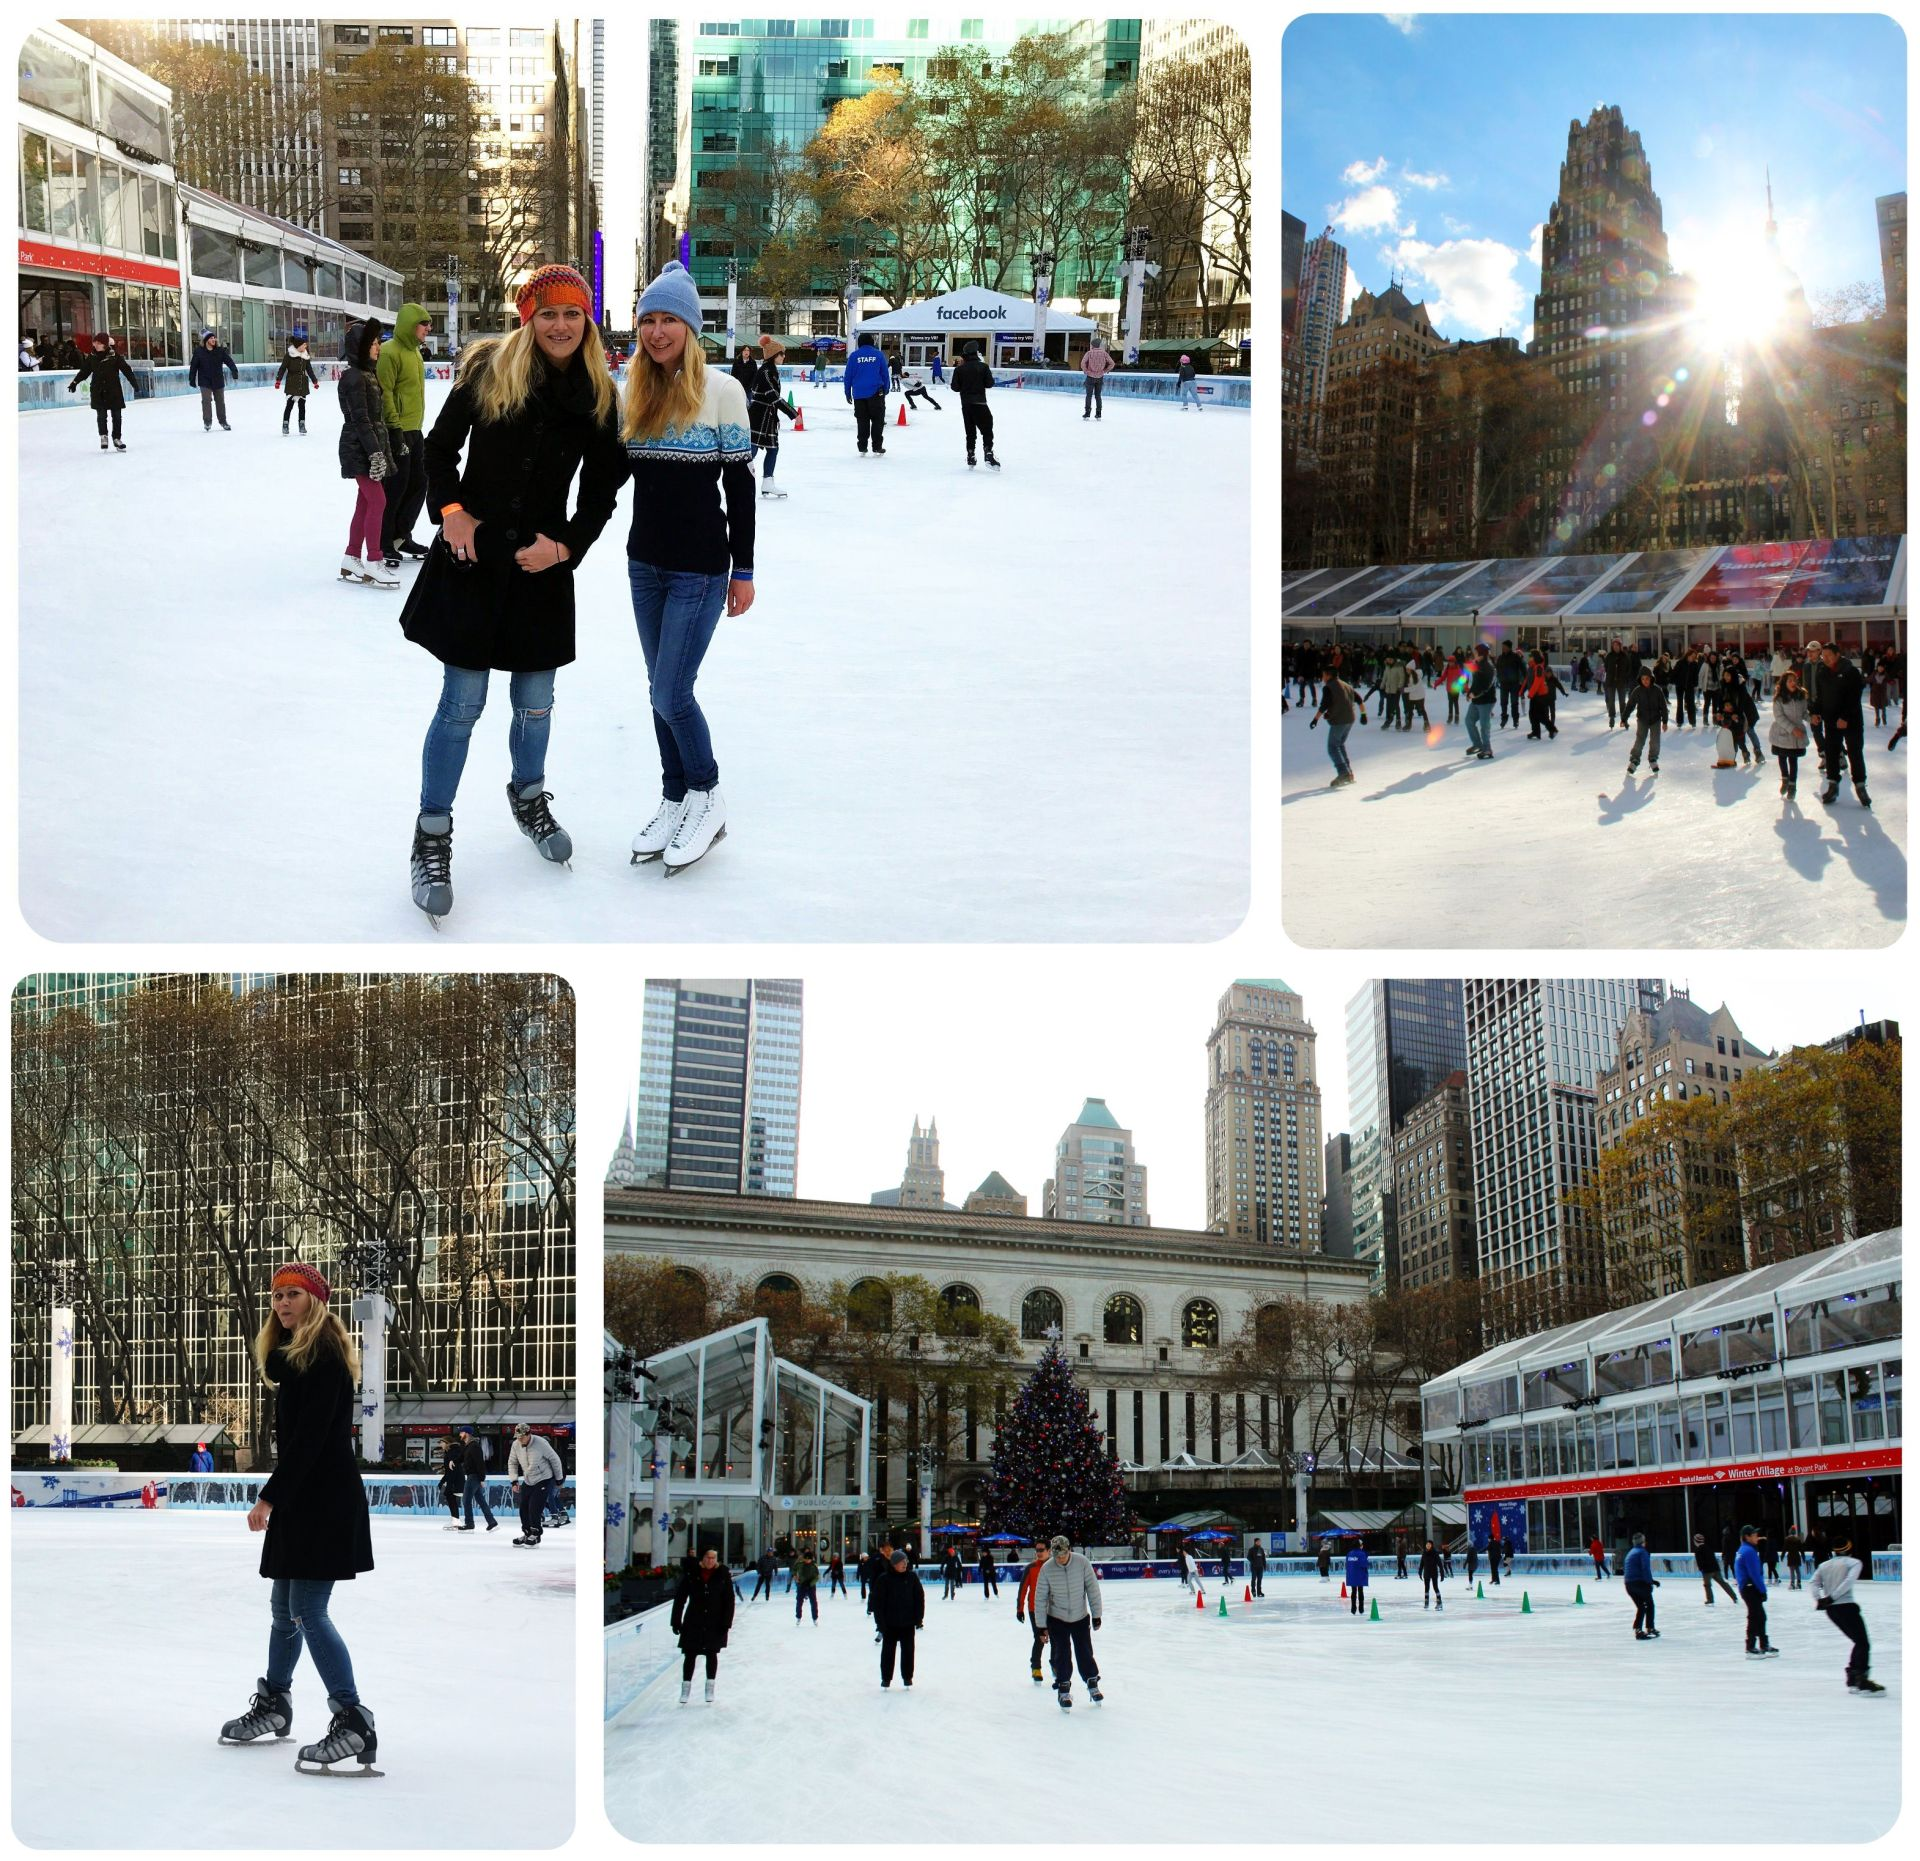 New York Bryant Park Ice Skating